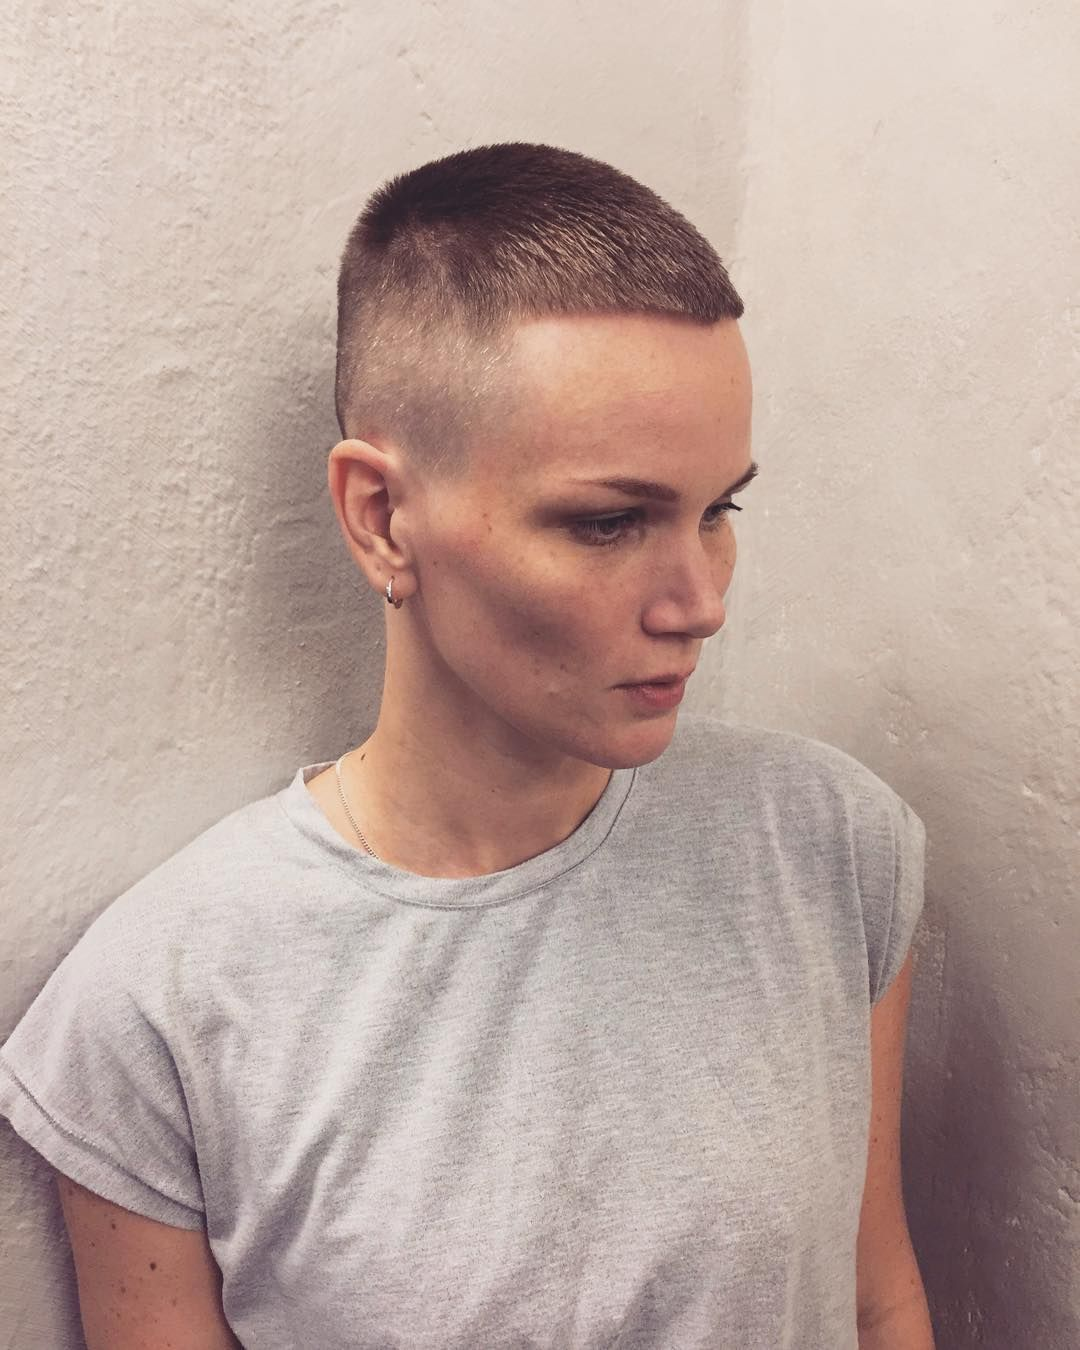 Woman With Buzzcut Military Haircut Military Haircut Buzzed Hair Women Girl Haircuts